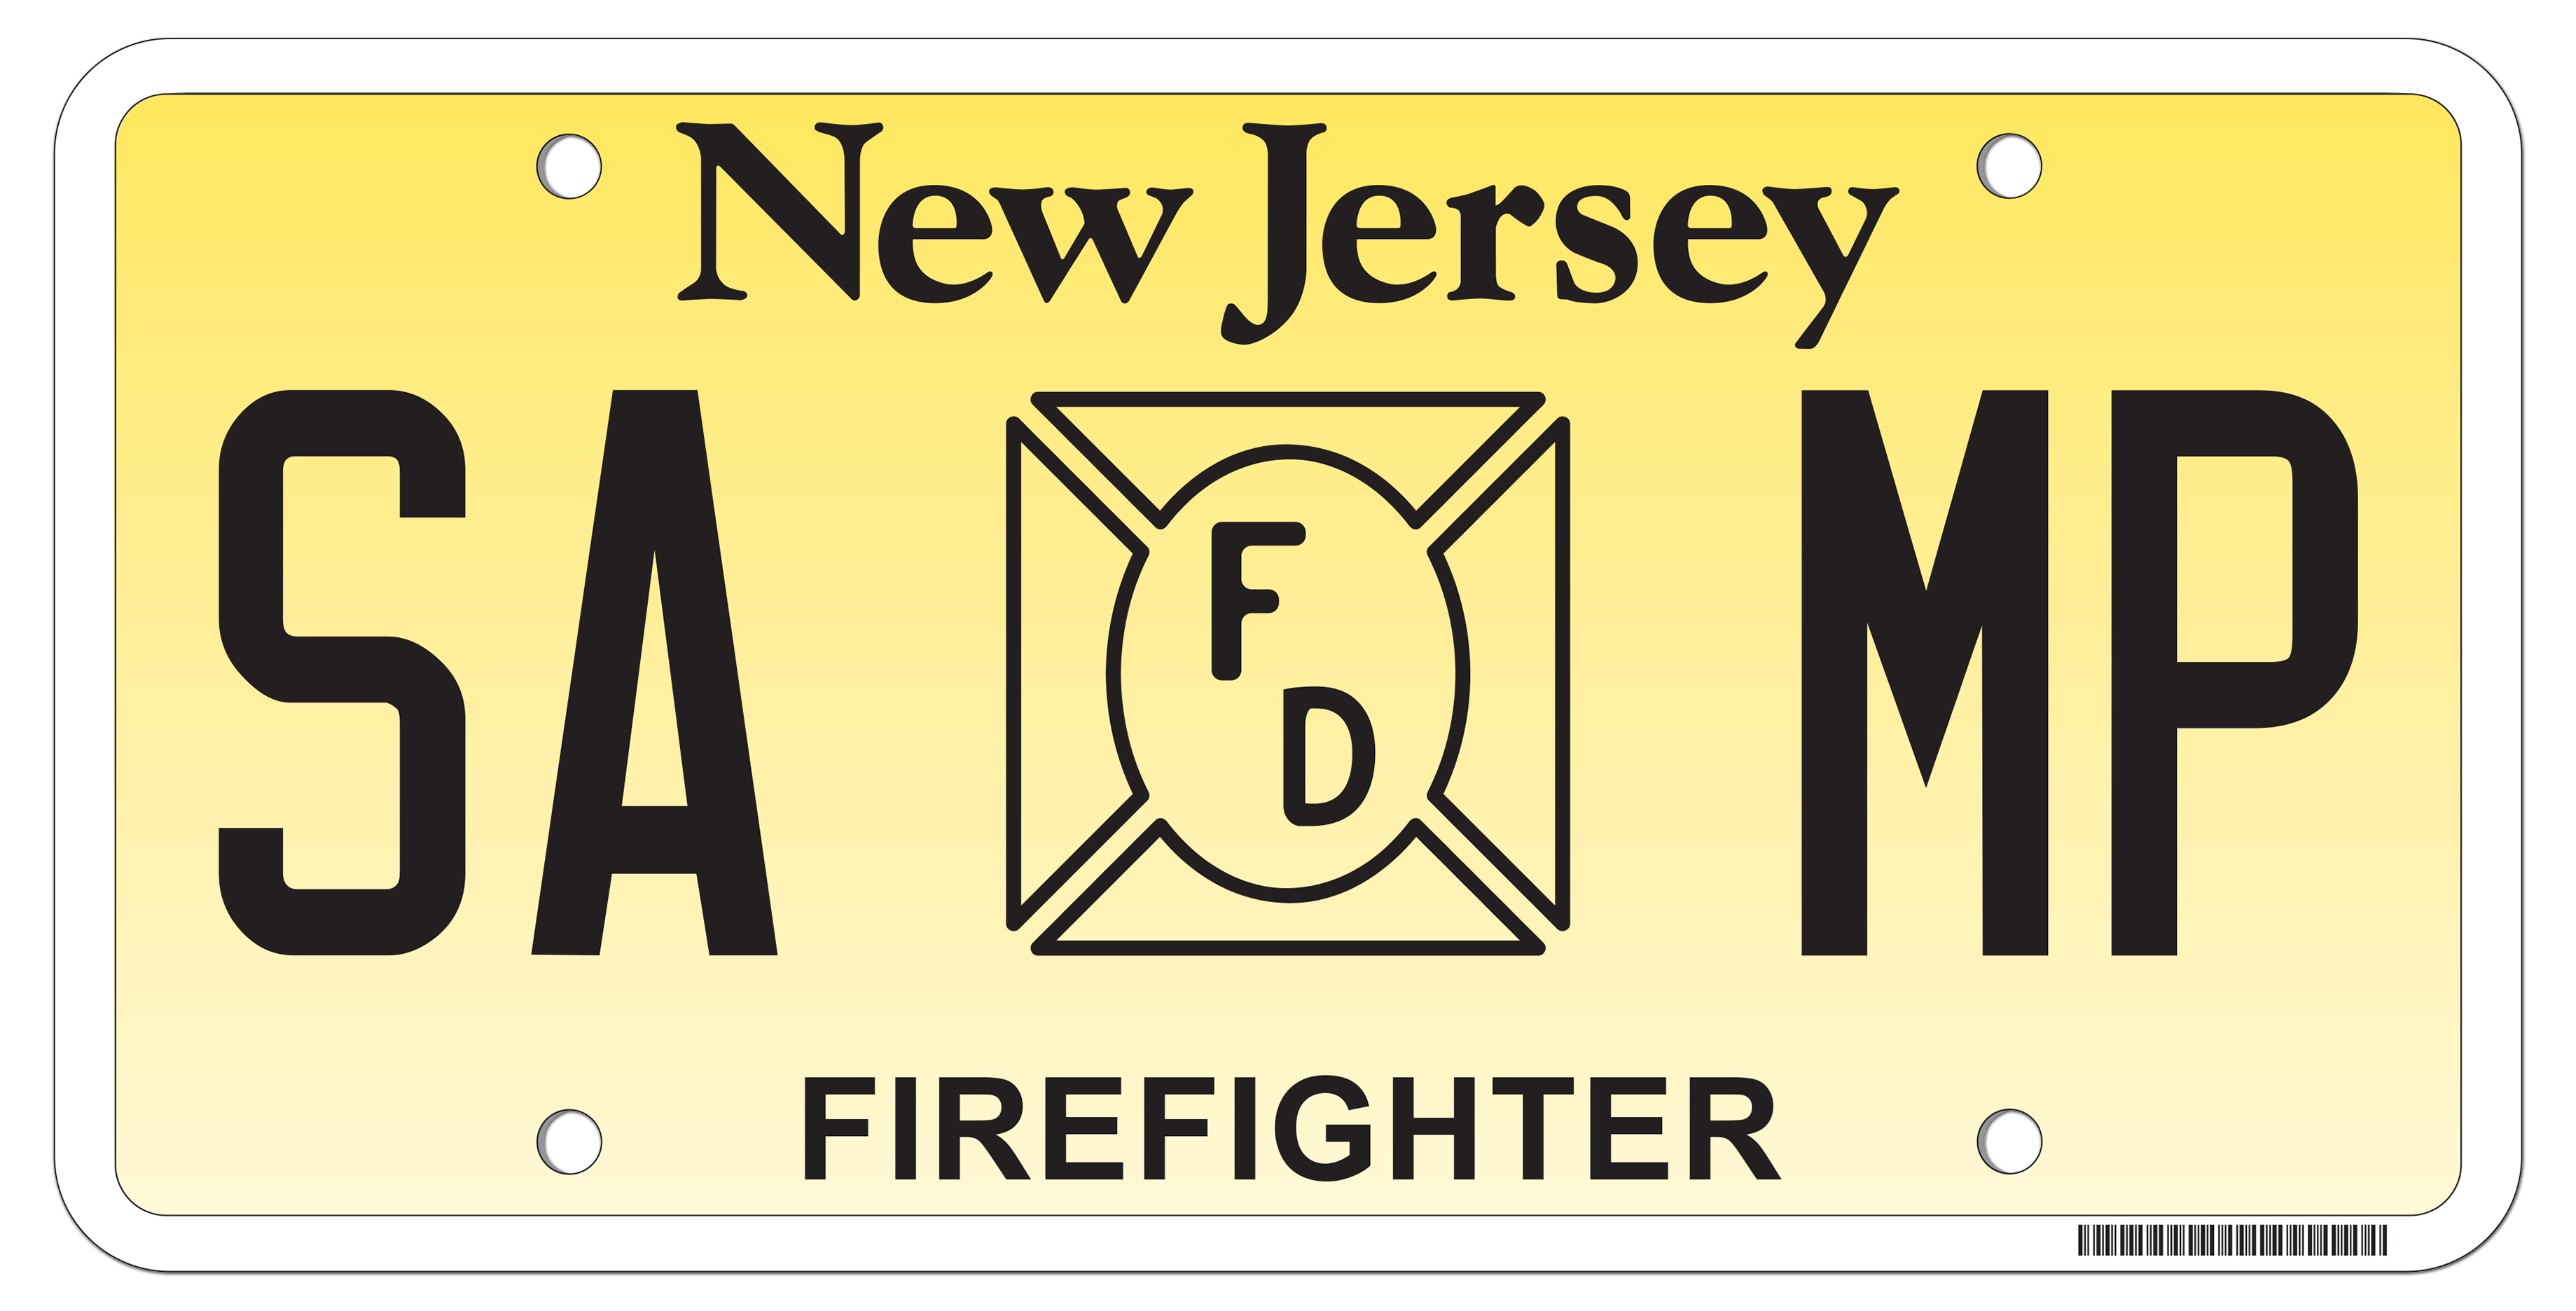 View car registration online nj